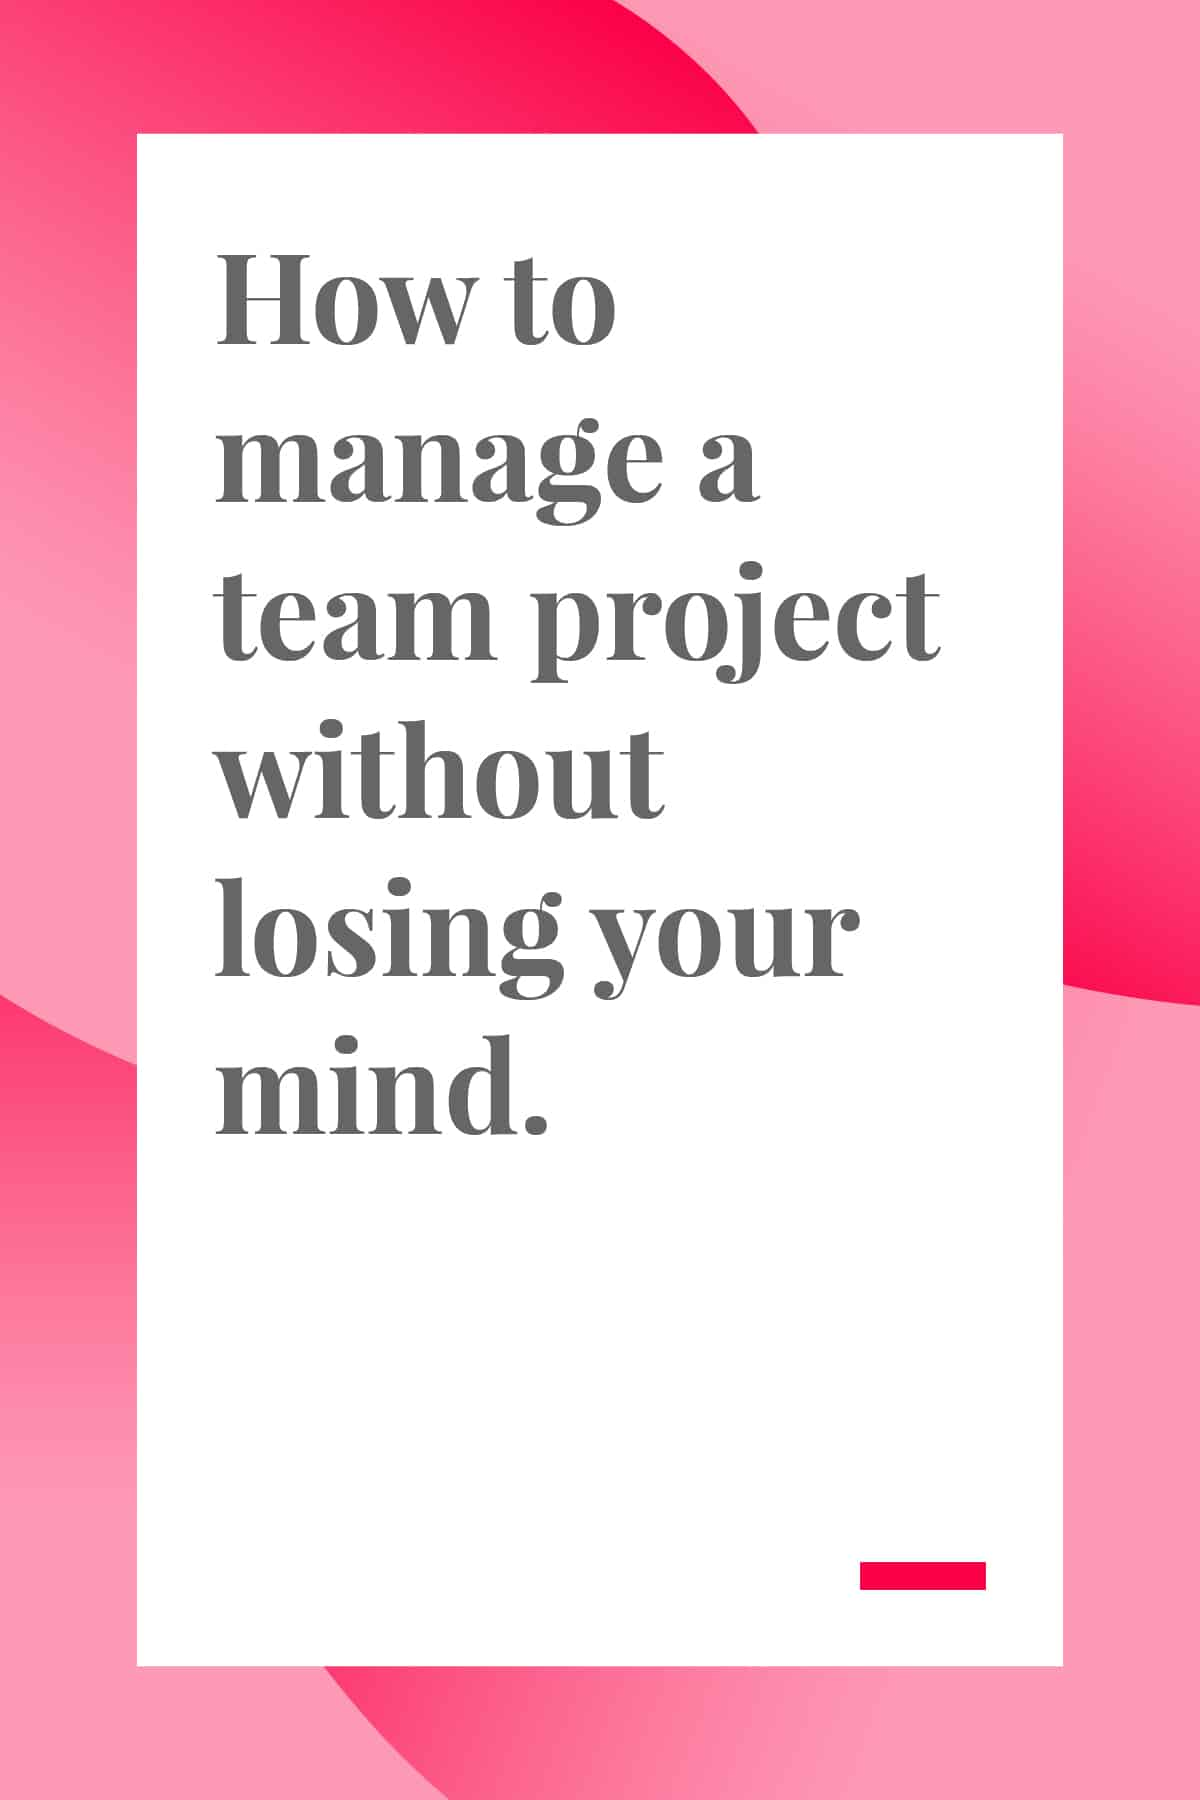 It takes a lot of work to manage a team project, but these tips will help you and your team reach your goals faster. #projectmanager #teamwork